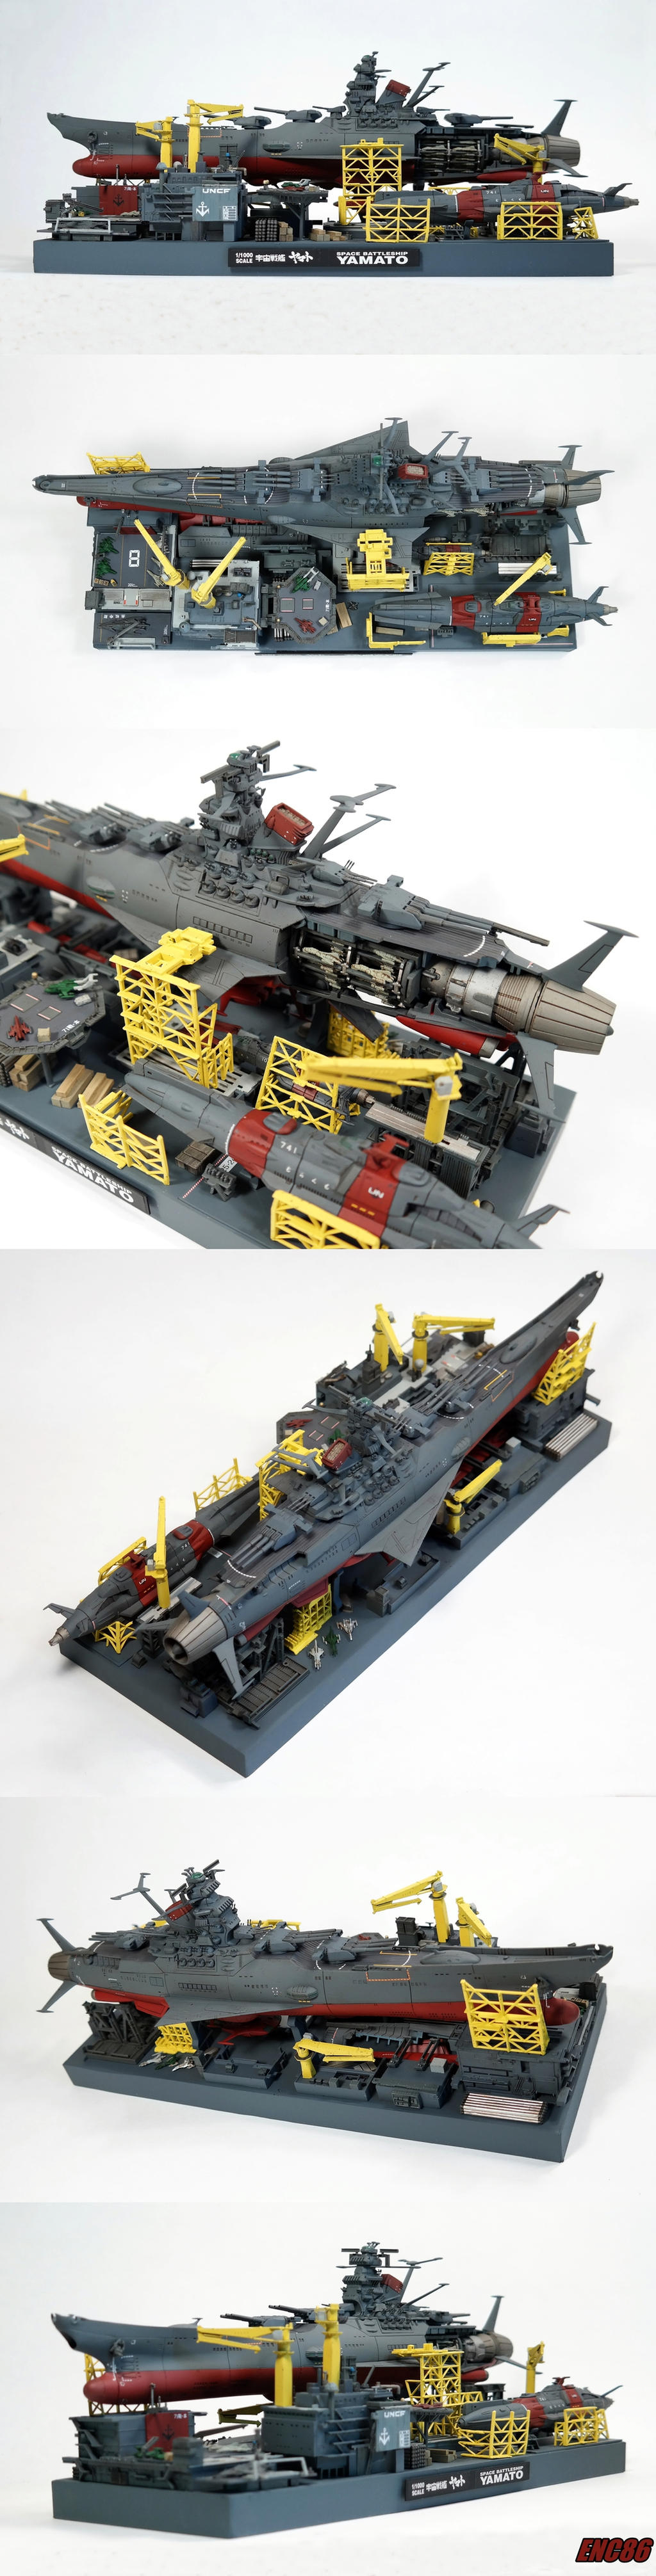 yamato_dry_dock_collage_by_enc86-d90qyj9